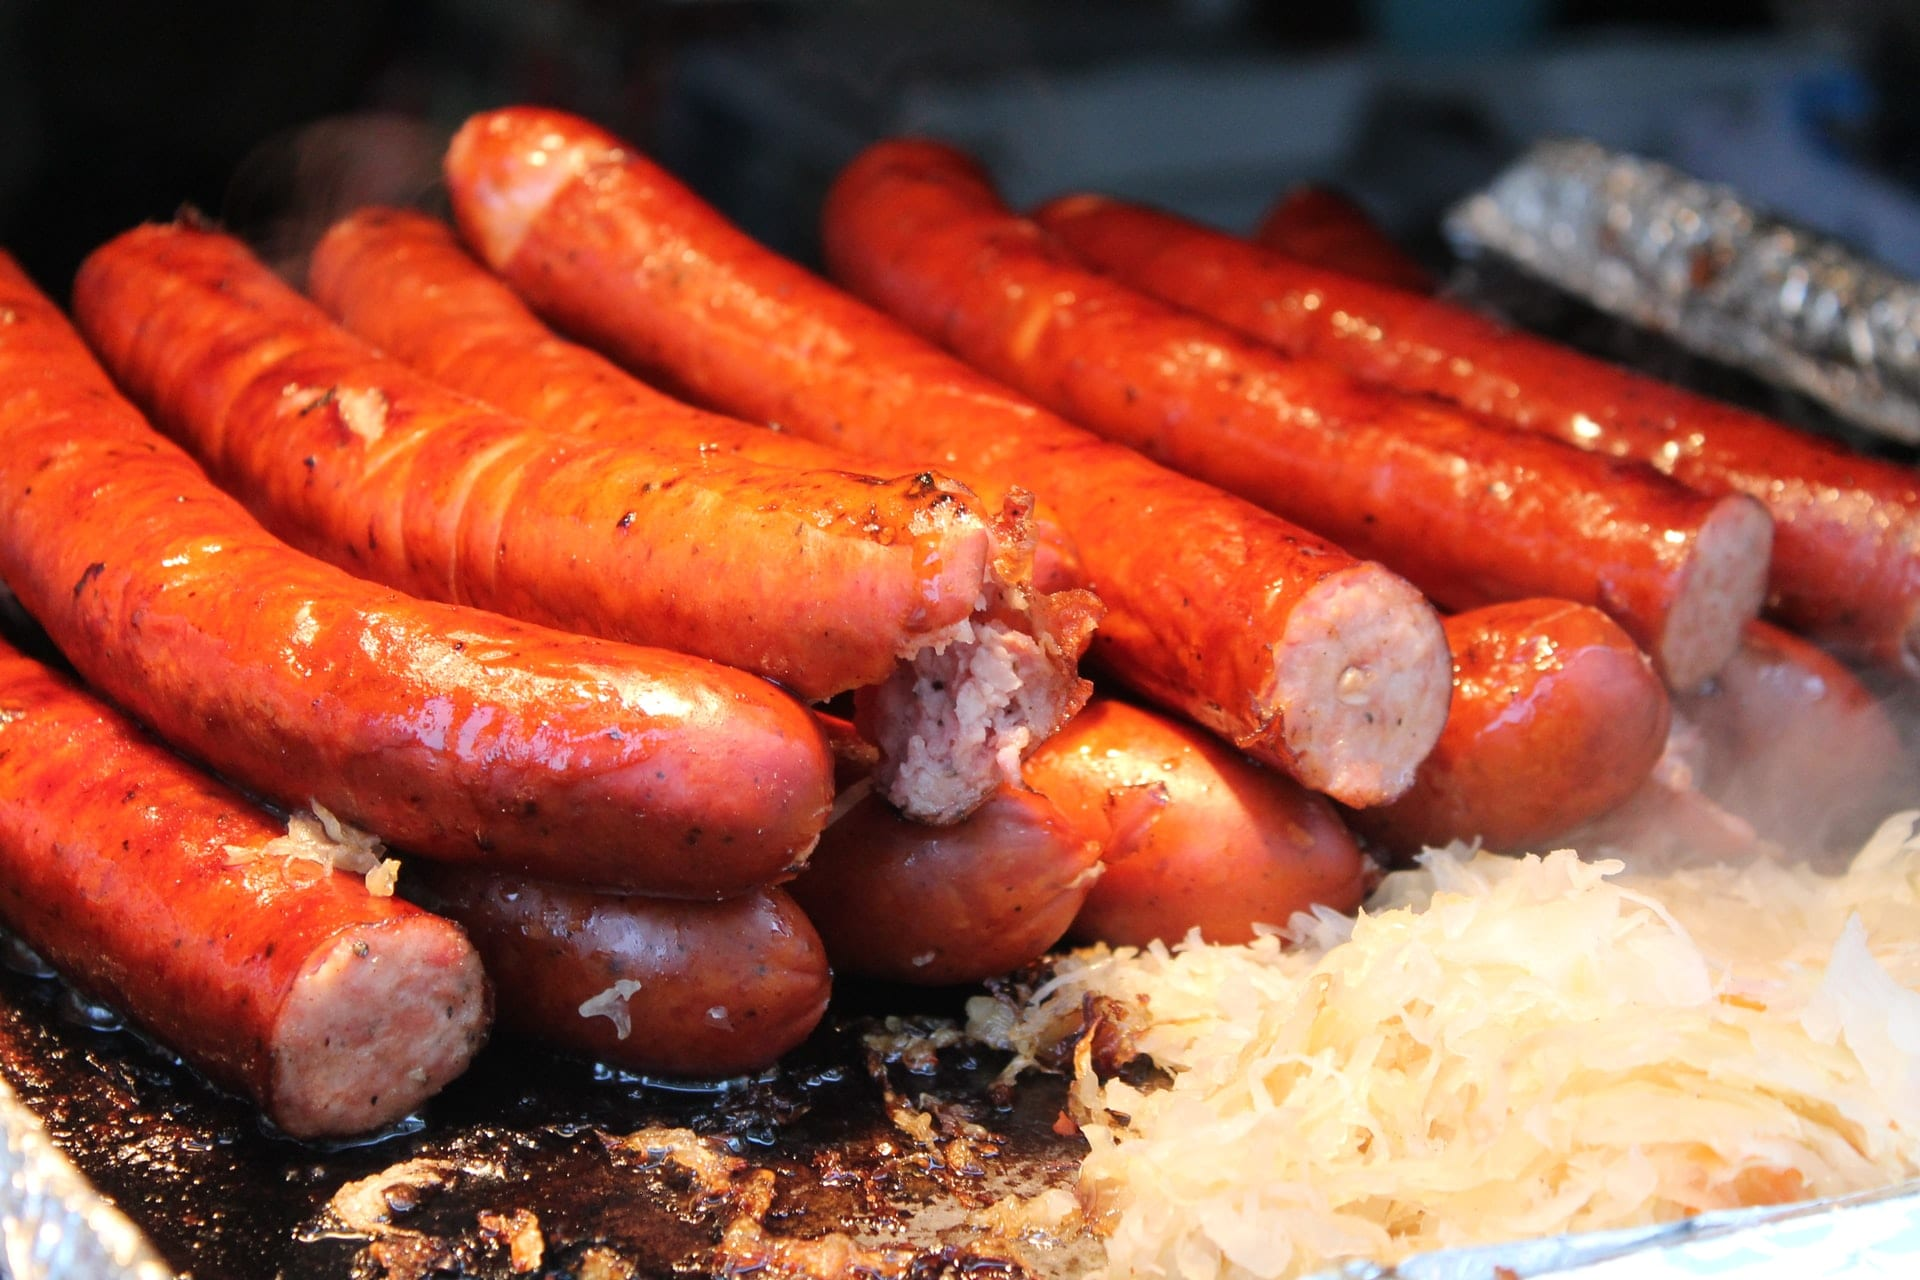 Sausages and sauerkraut on a flattop grill